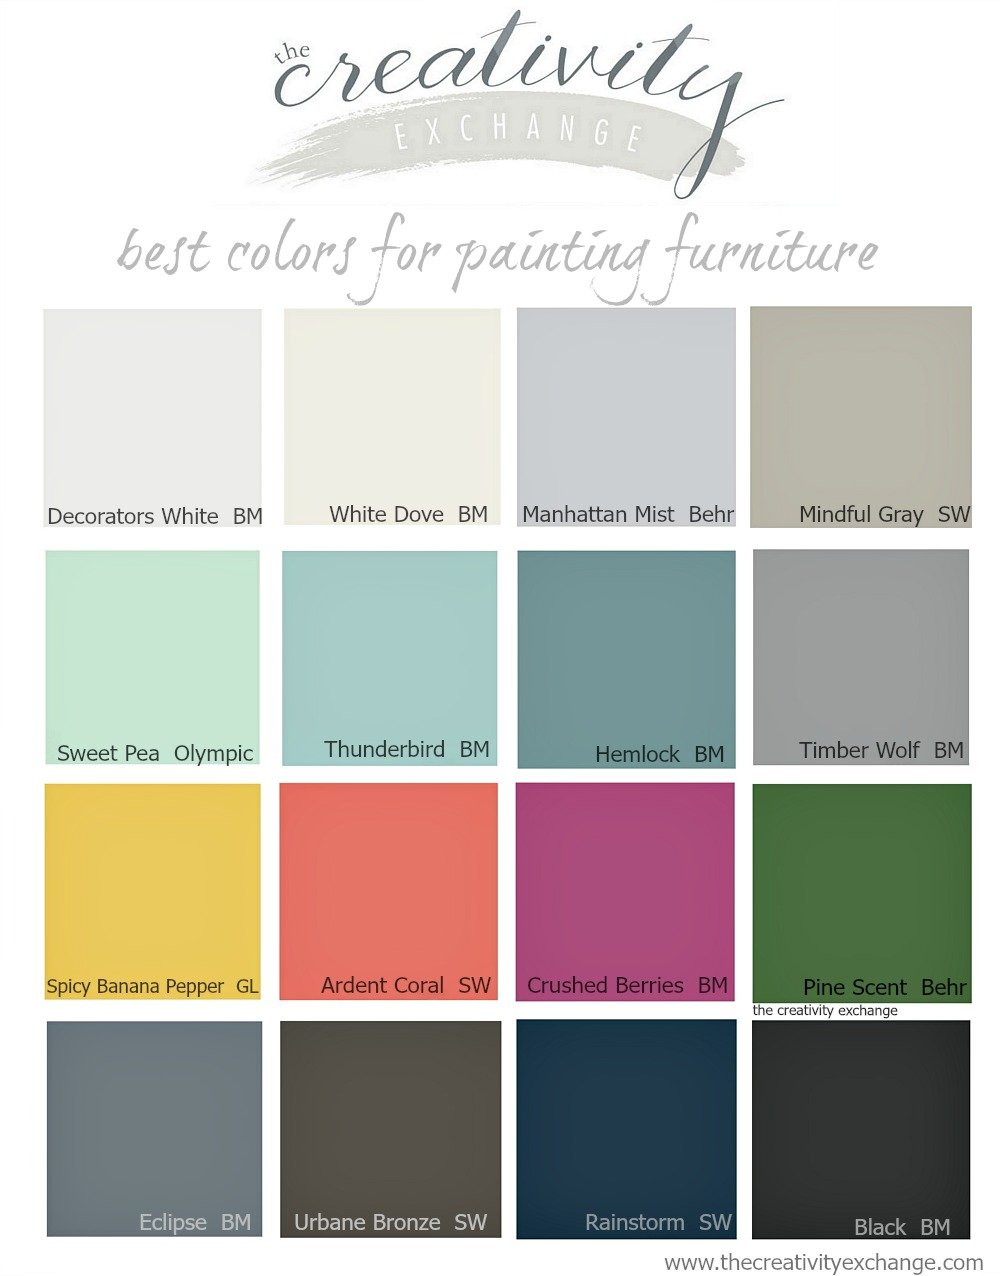 best paint colors16 of the Best Paint Colors for Painting Furniture